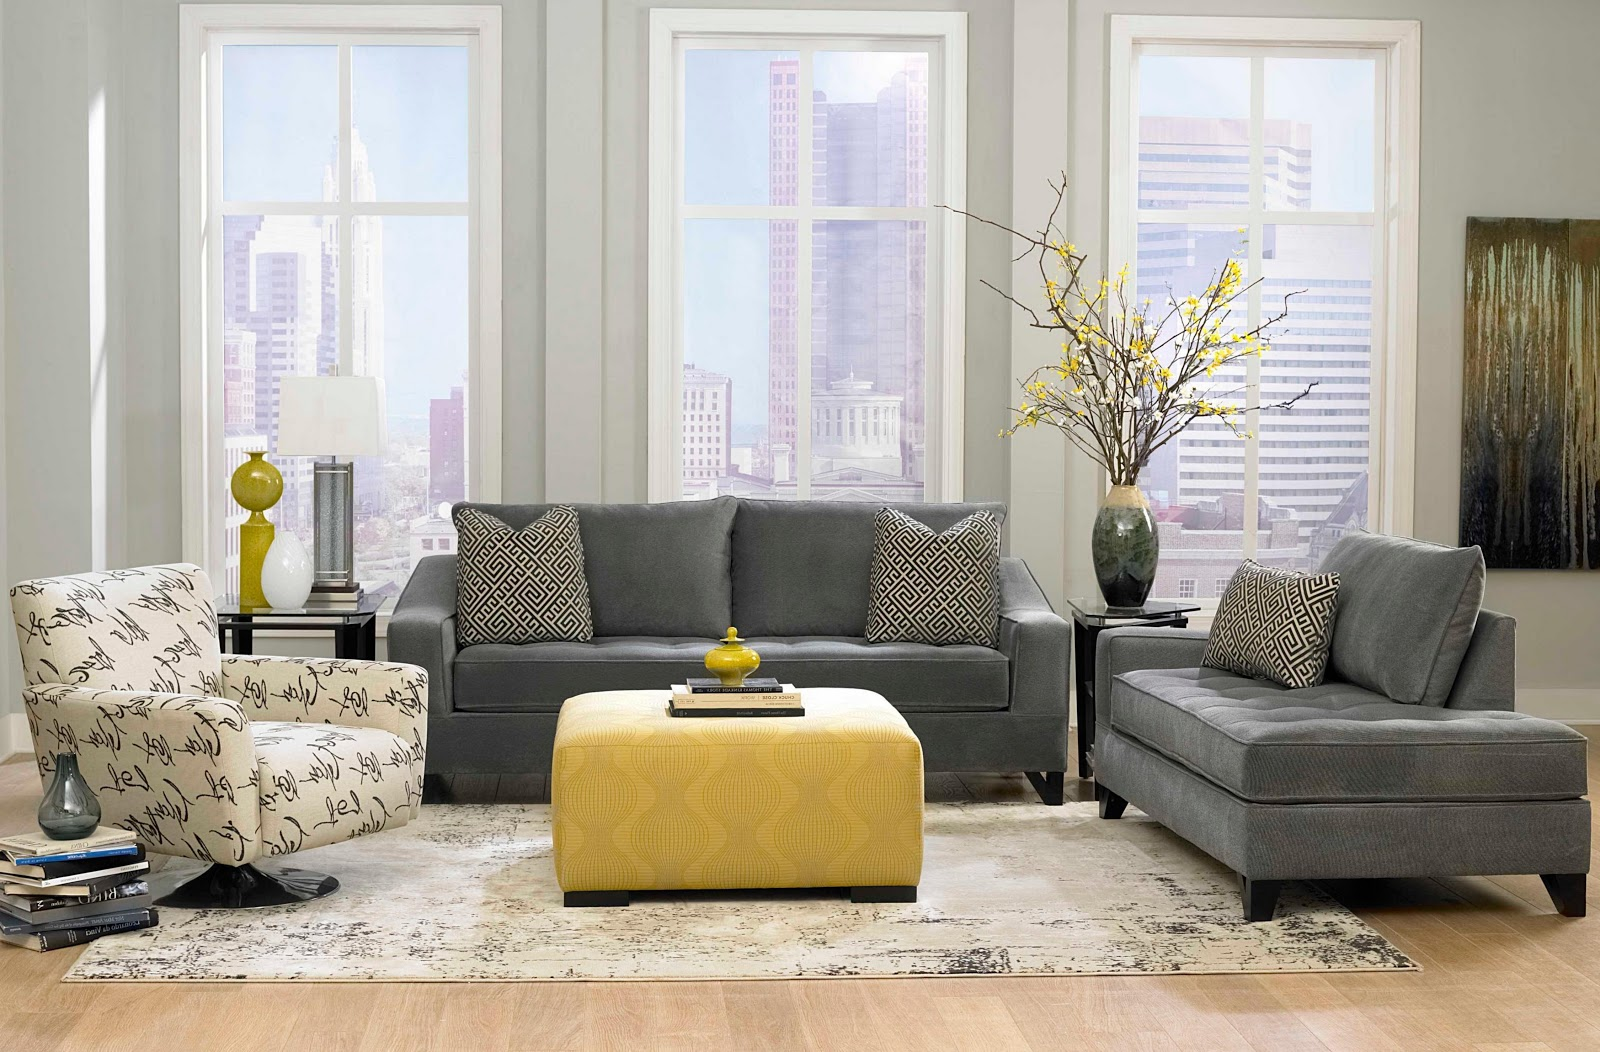 Swivel Chairs for Living Room Contemporary - FELISH HOME ...